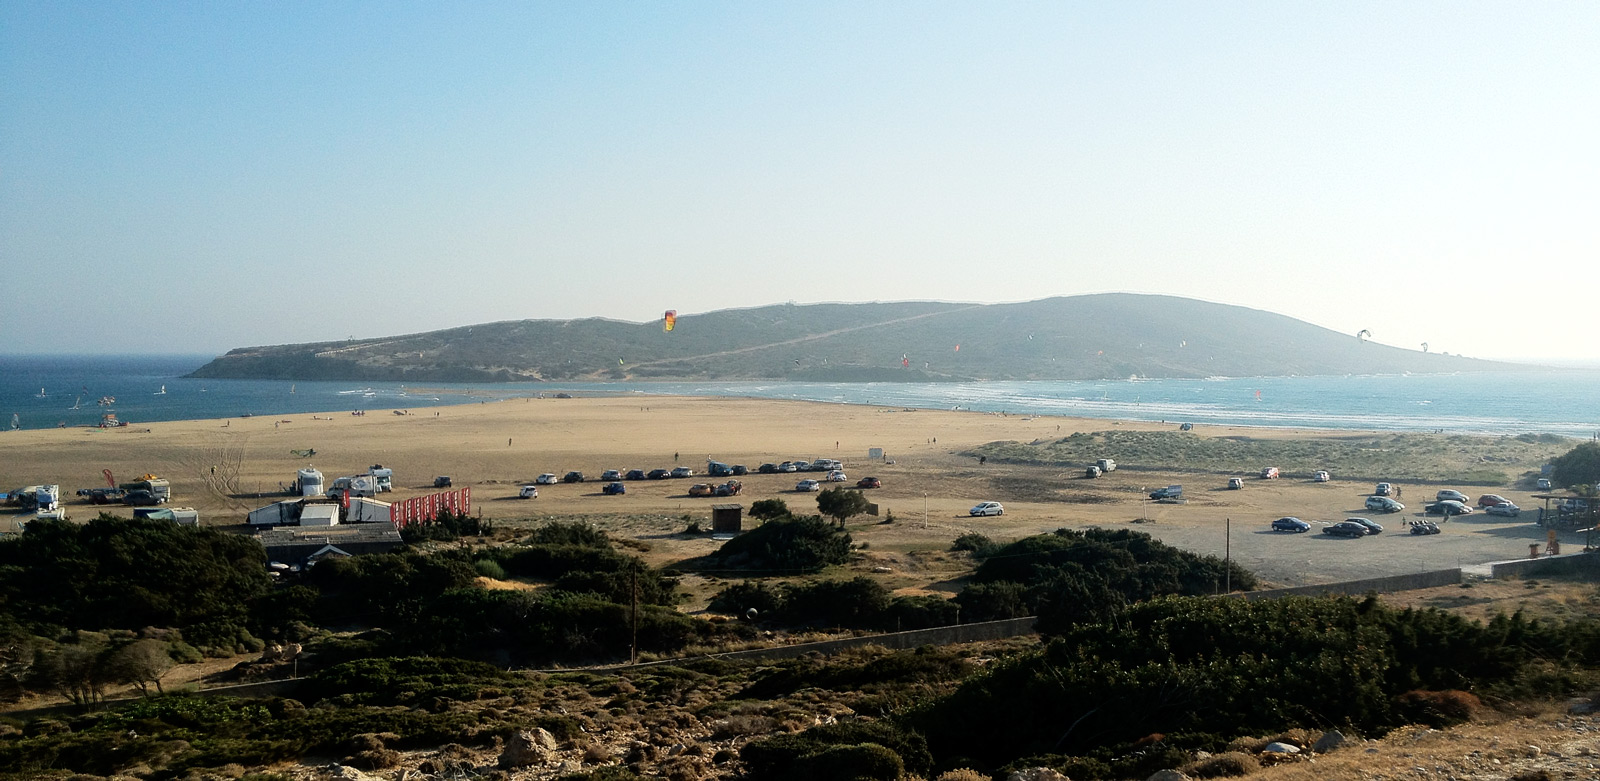 Prasonisi kite spot